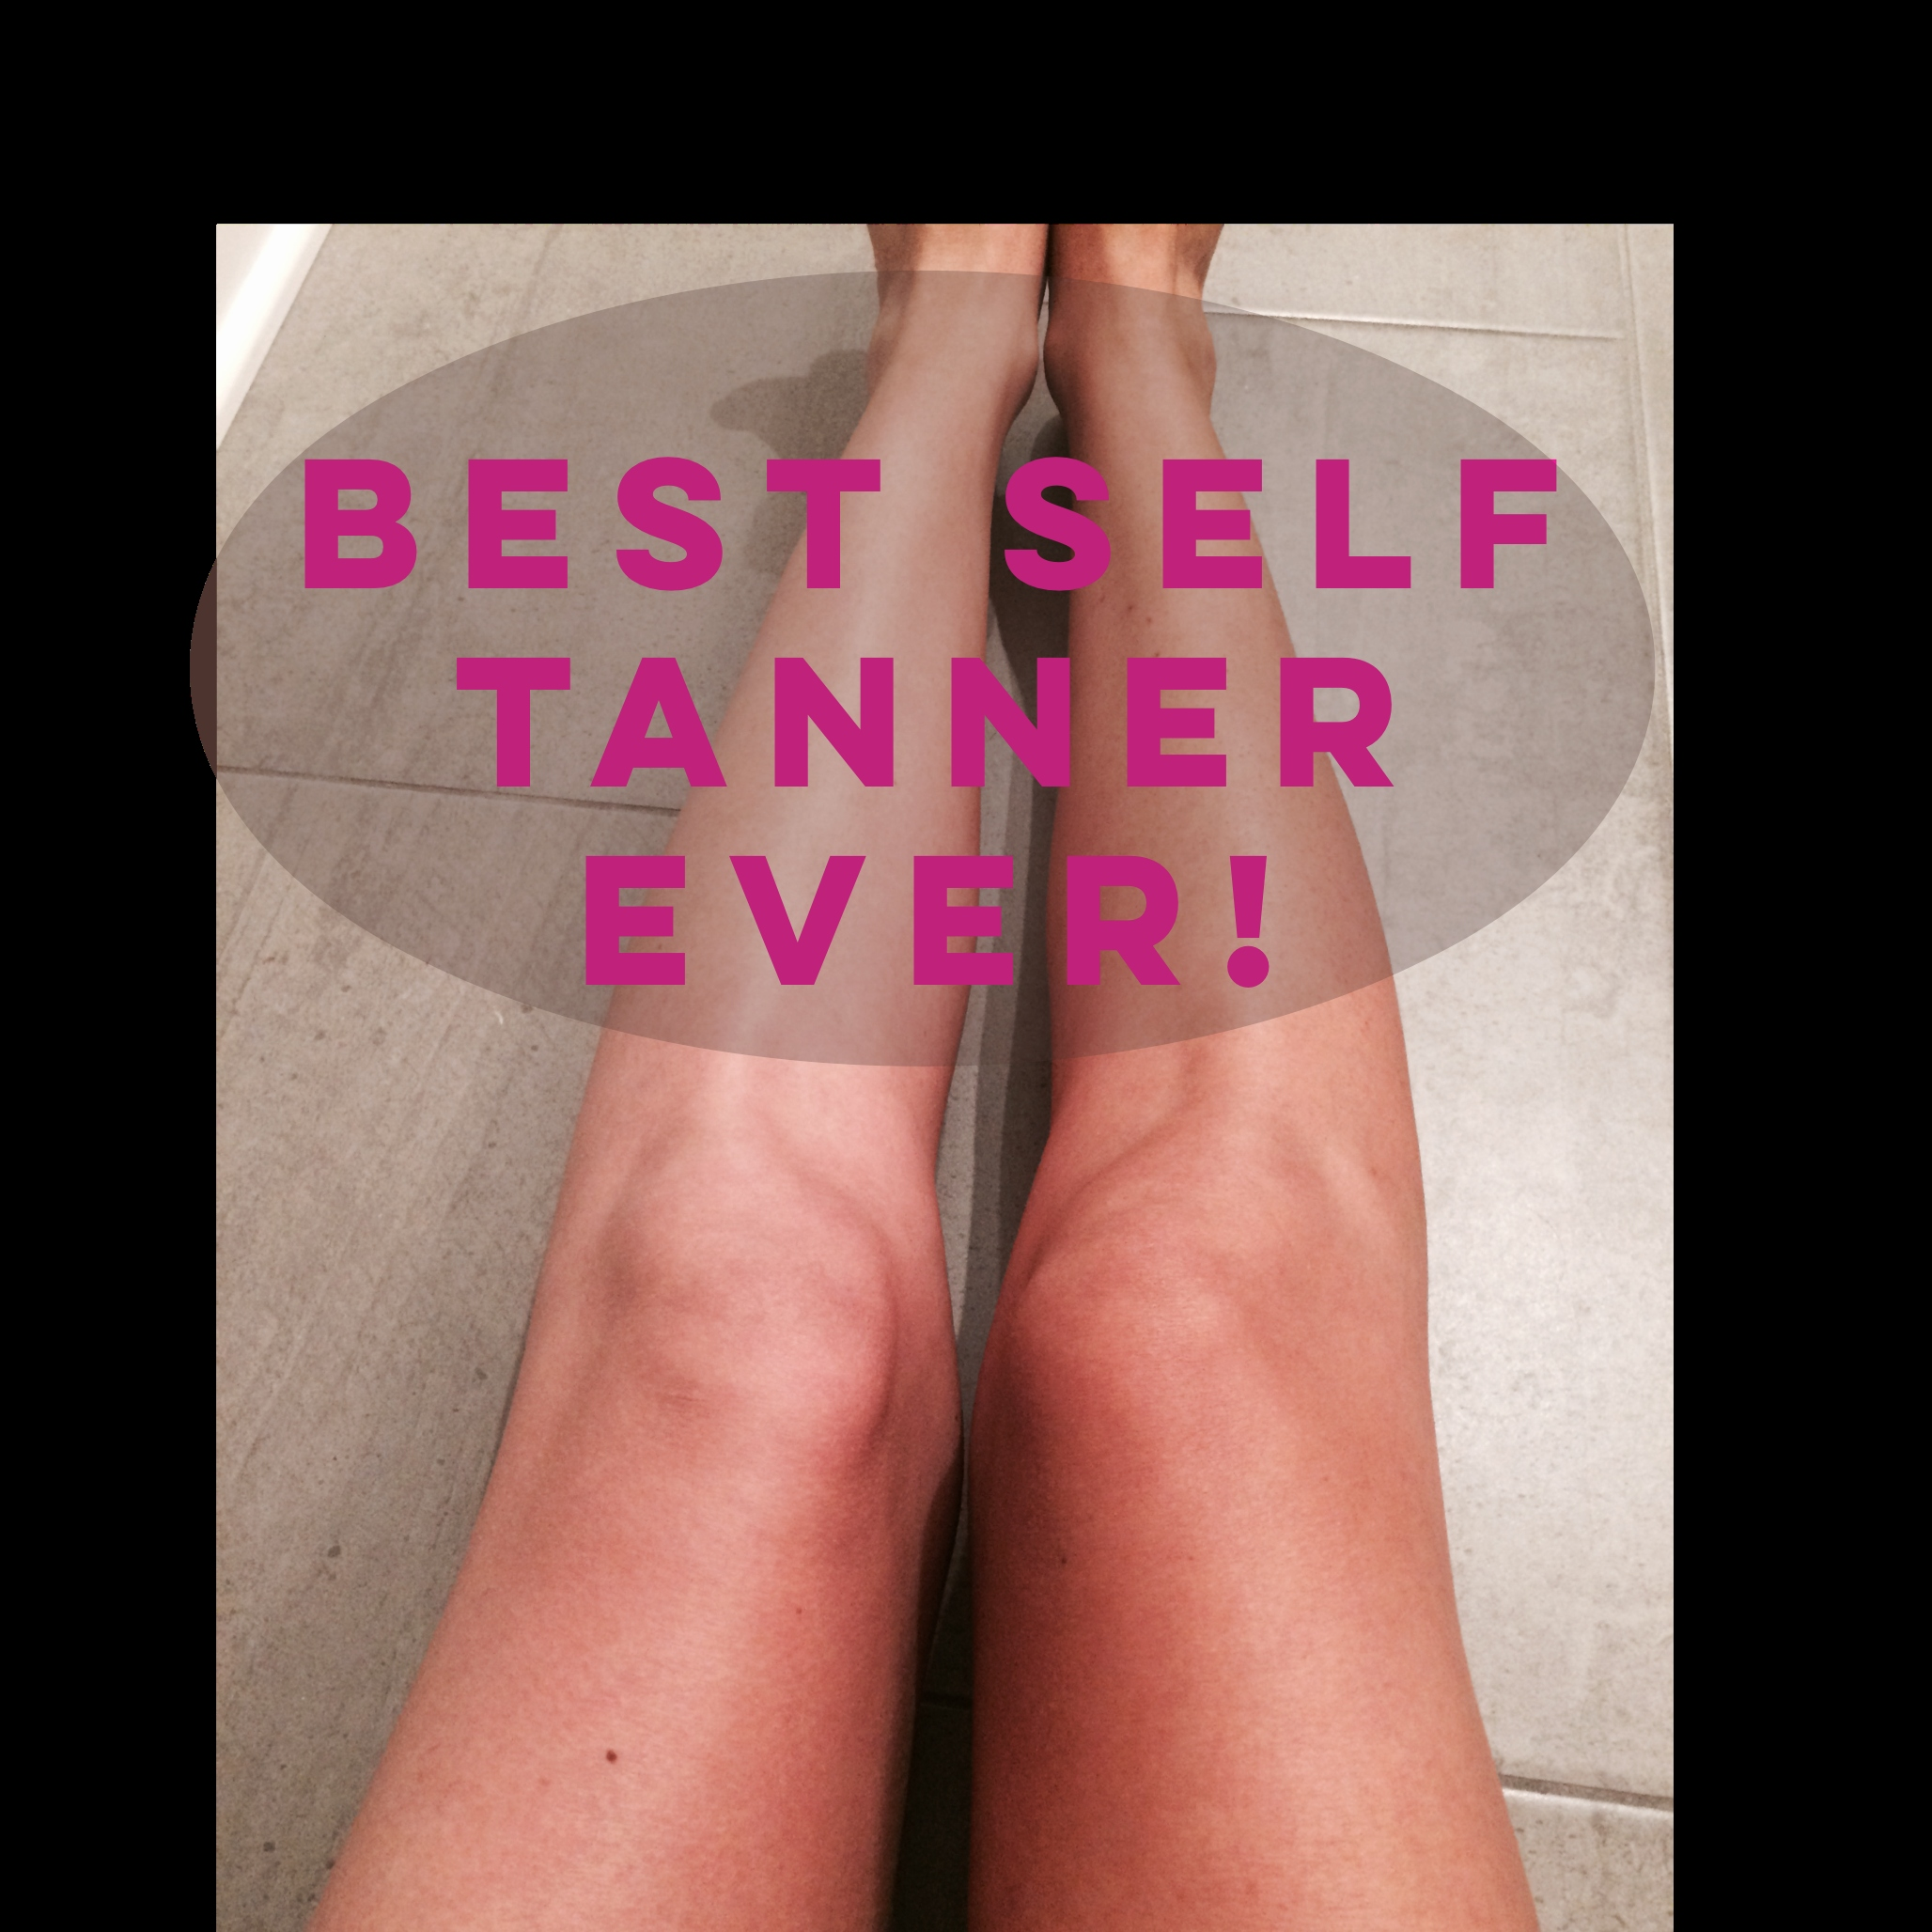 Younique Presenter Agreement New Younique Self Tanning Lotion